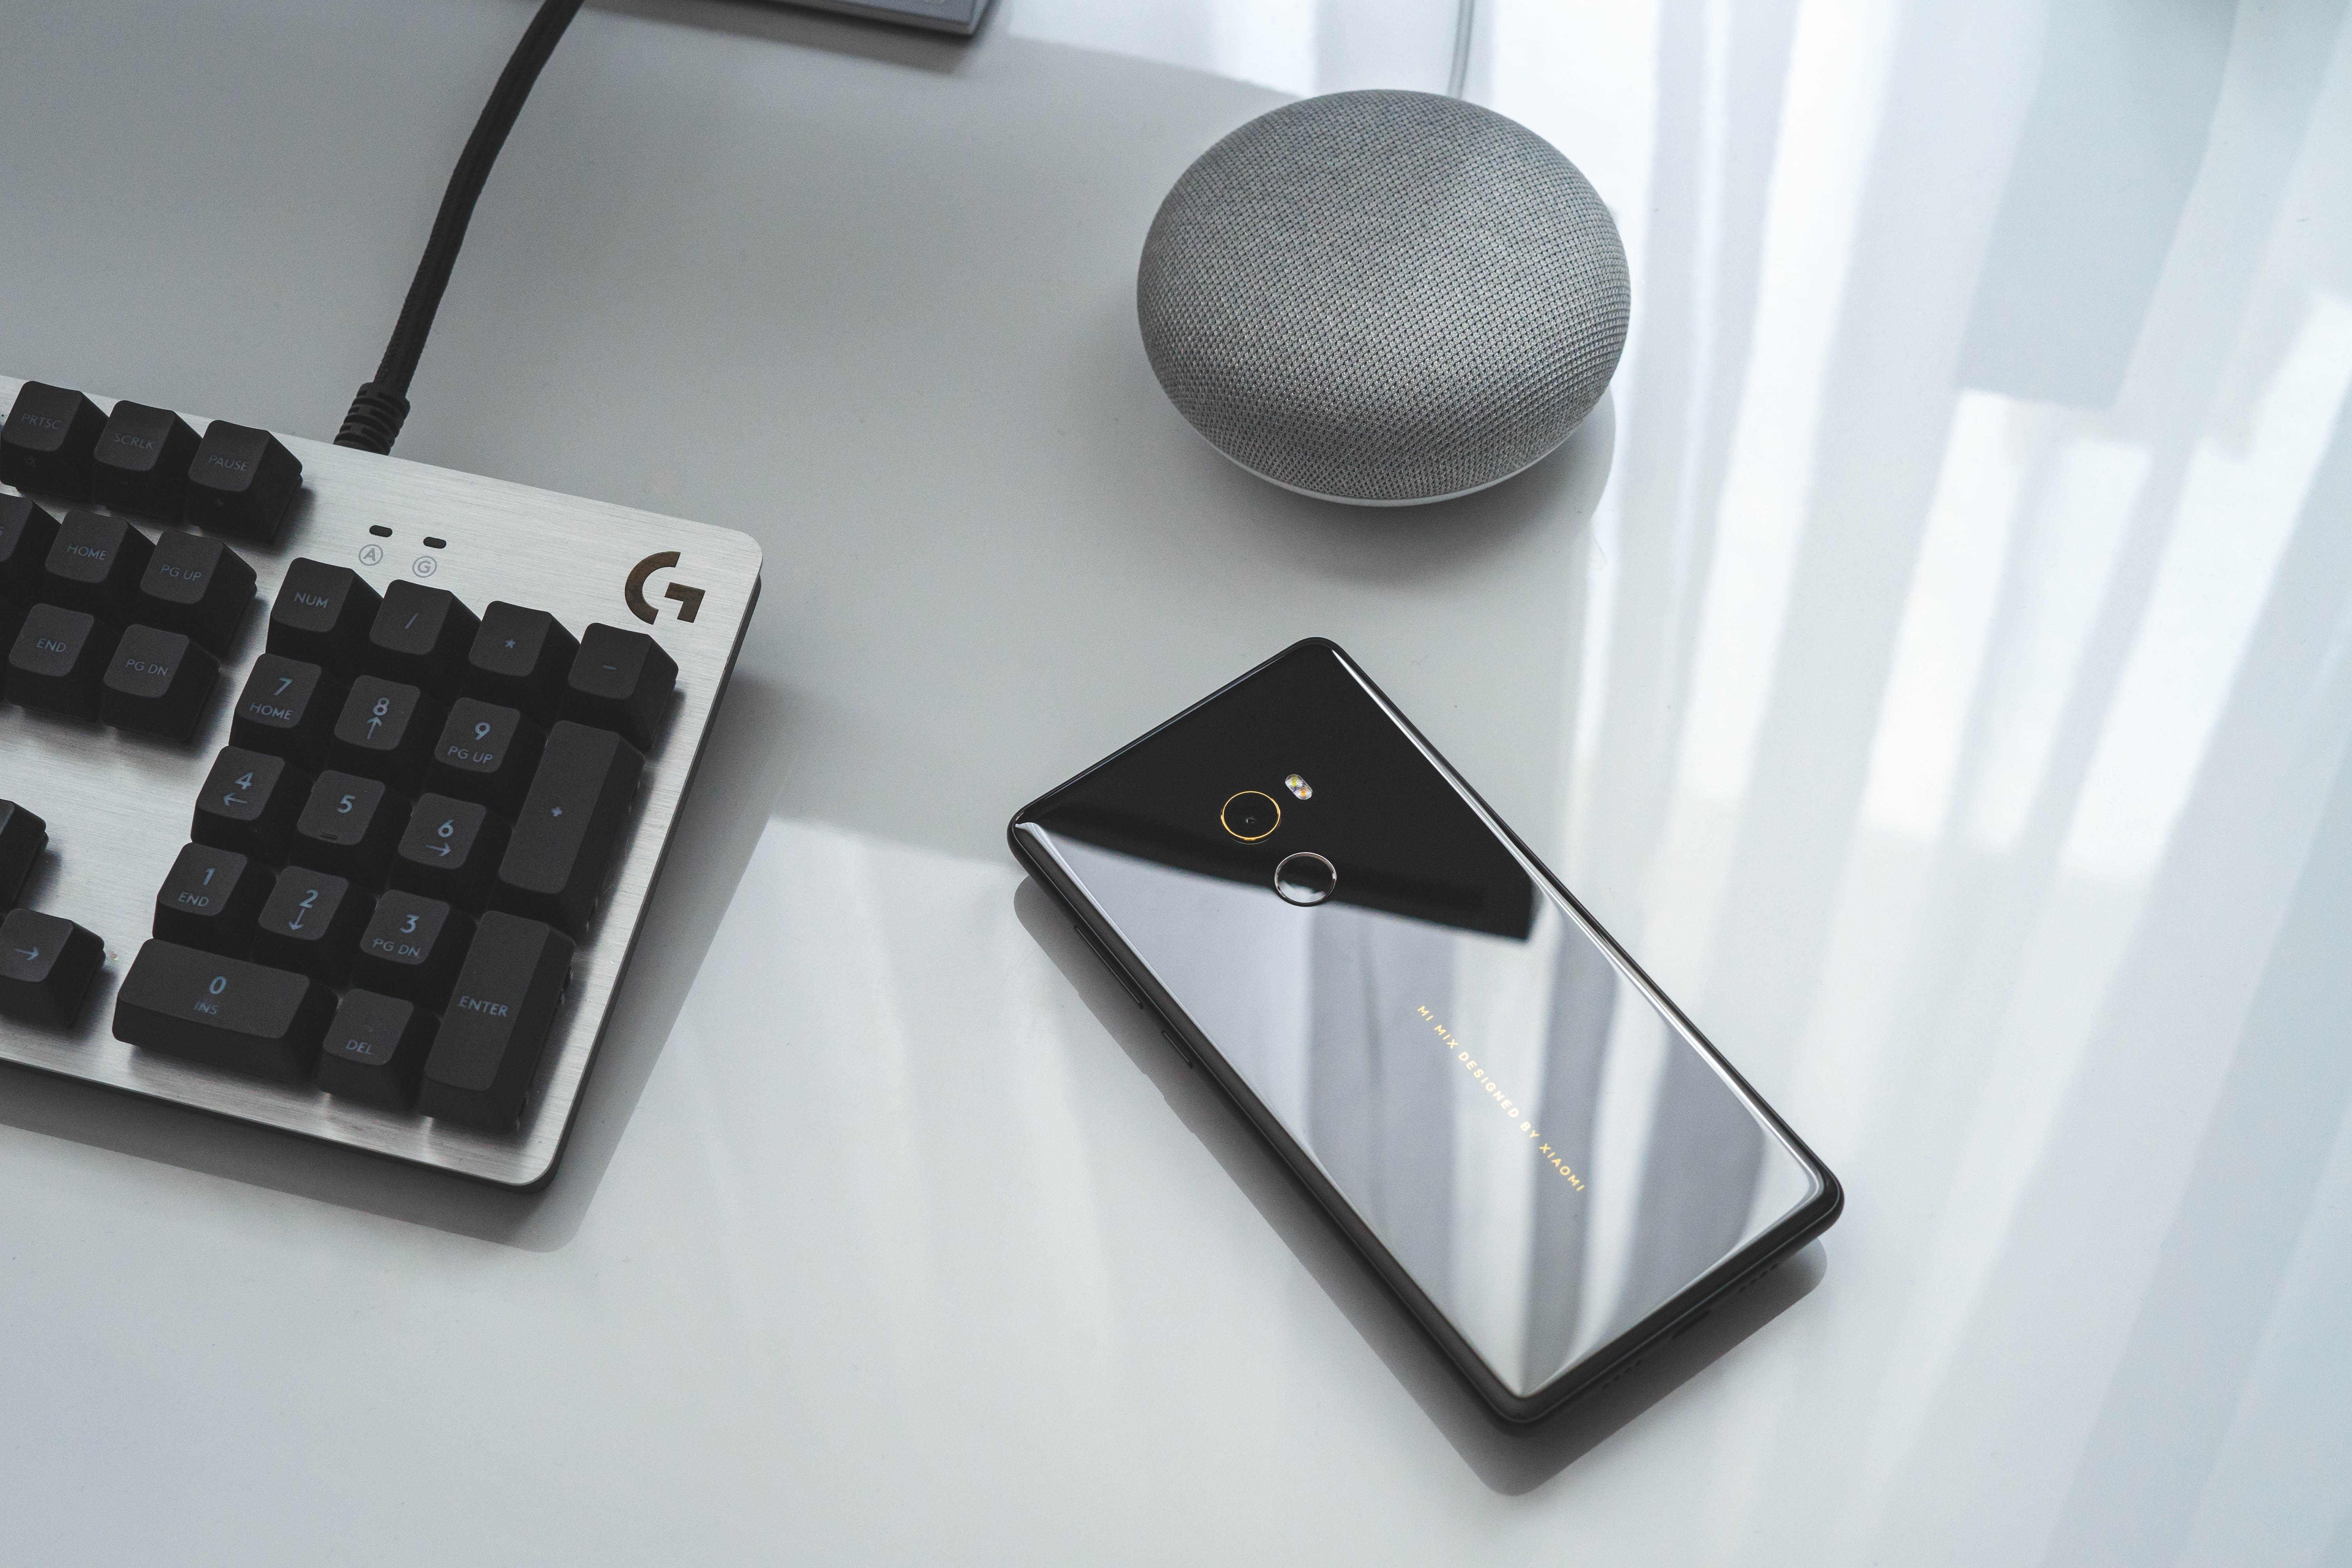 black Android smartphone near computer keyboard